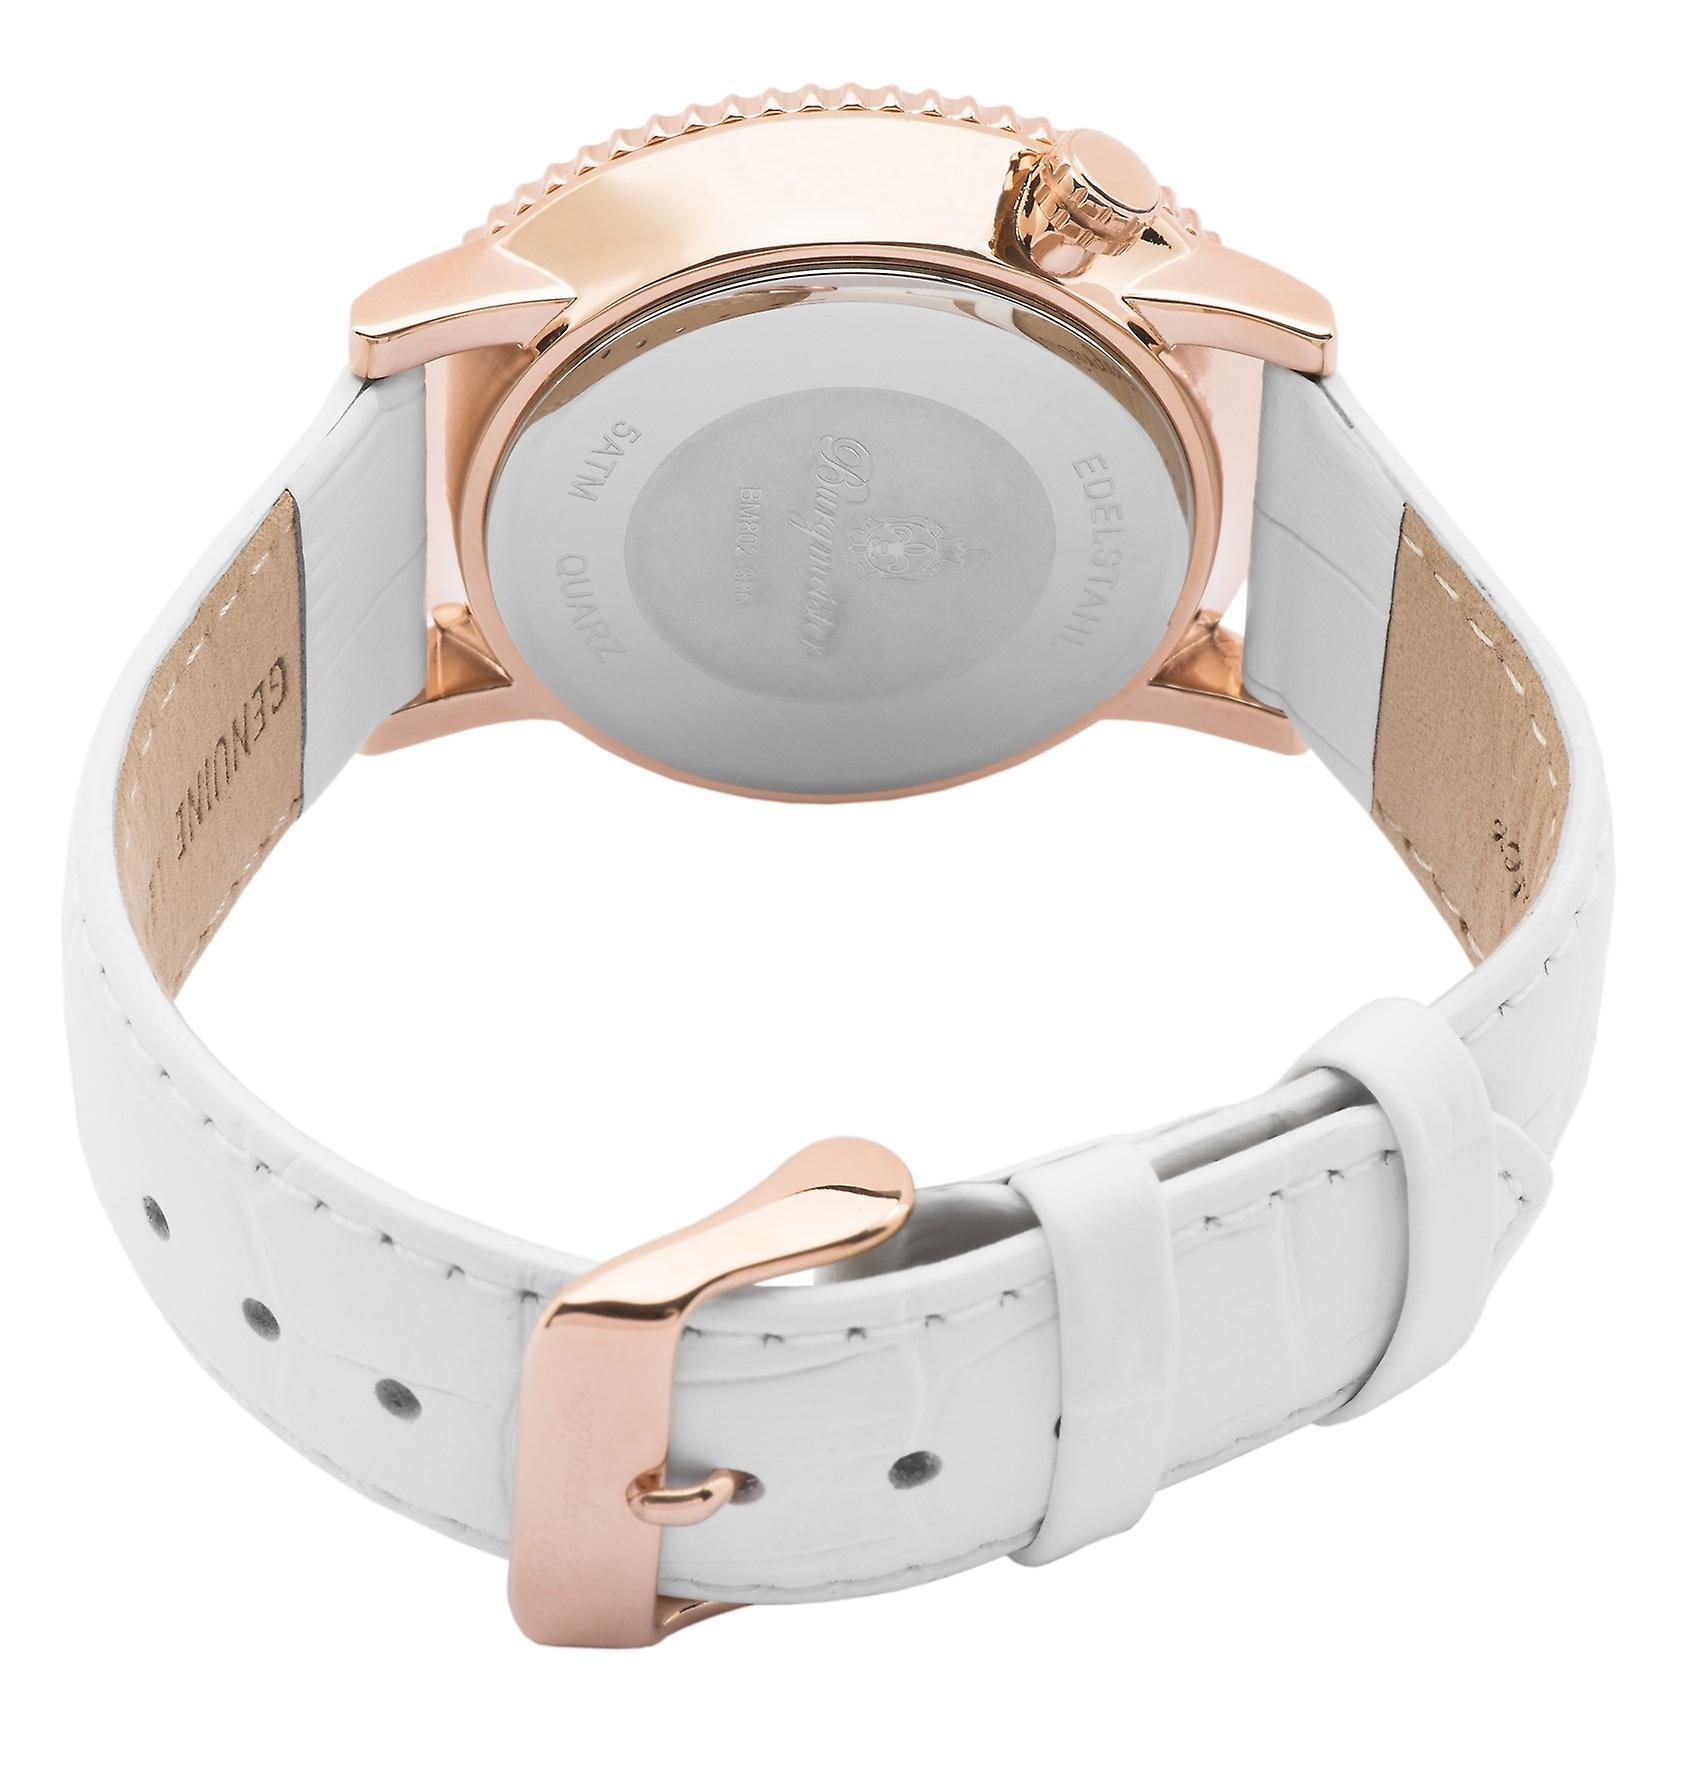 Burgmeister ladies quartz watch Kiruna, BM802-386